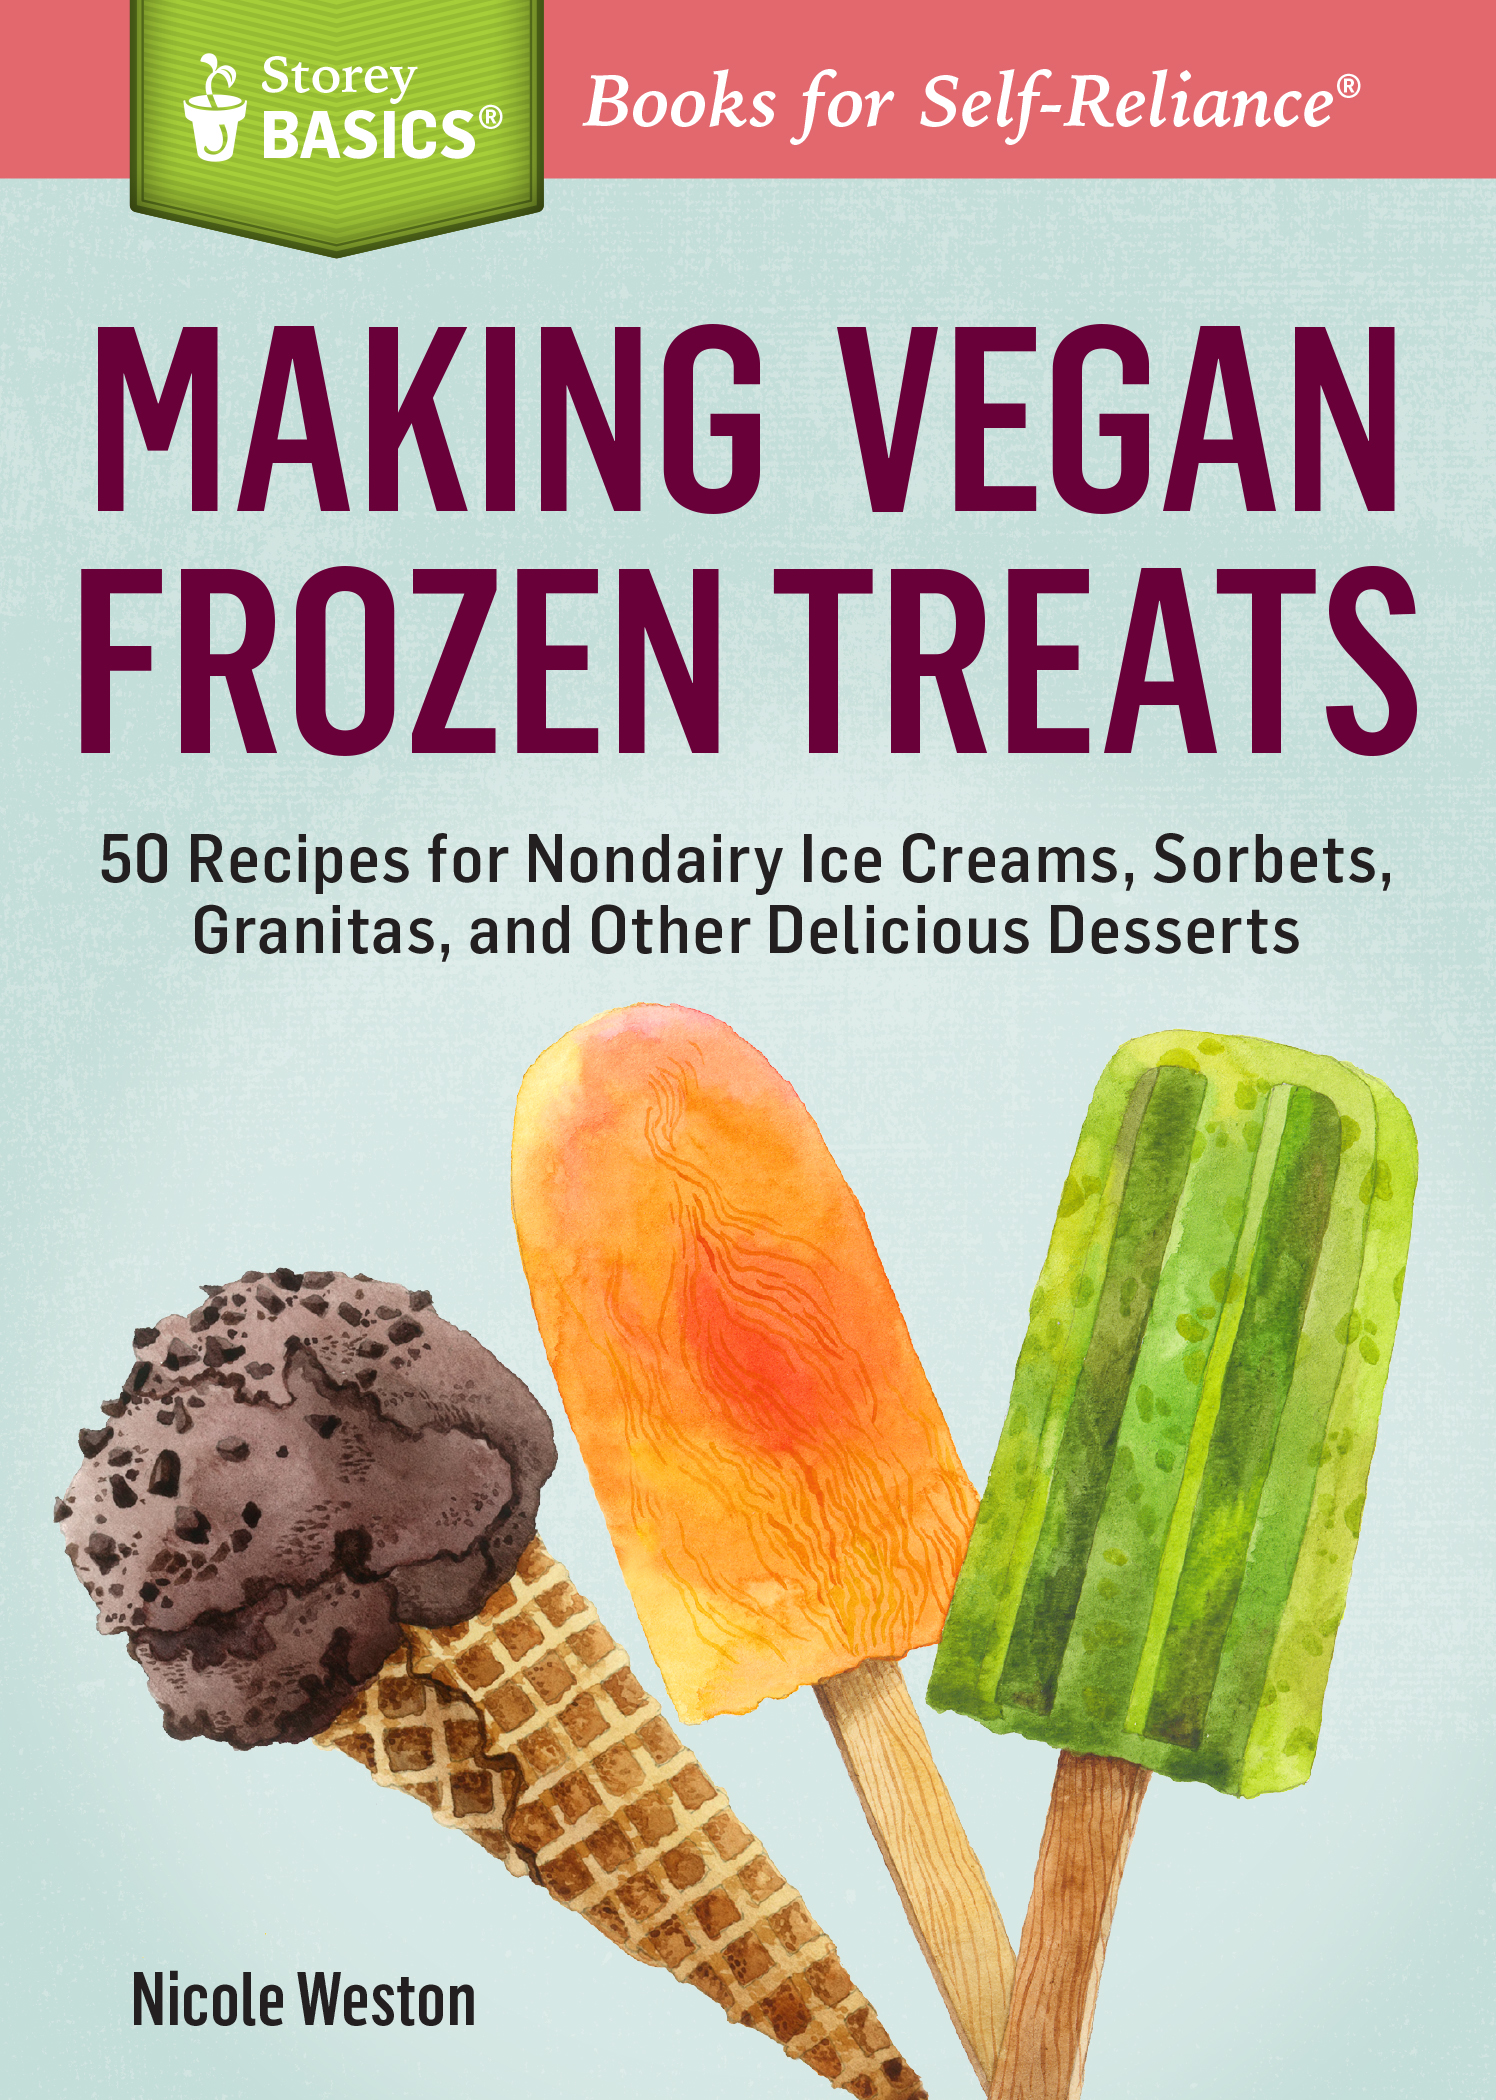 Making Vegan Frozen Treats 50 Recipes for Nondairy Ice Creams, Sorbets, Granitas, and Other Delicious Desserts. A Storey BASICS® Title - Nicole Weston